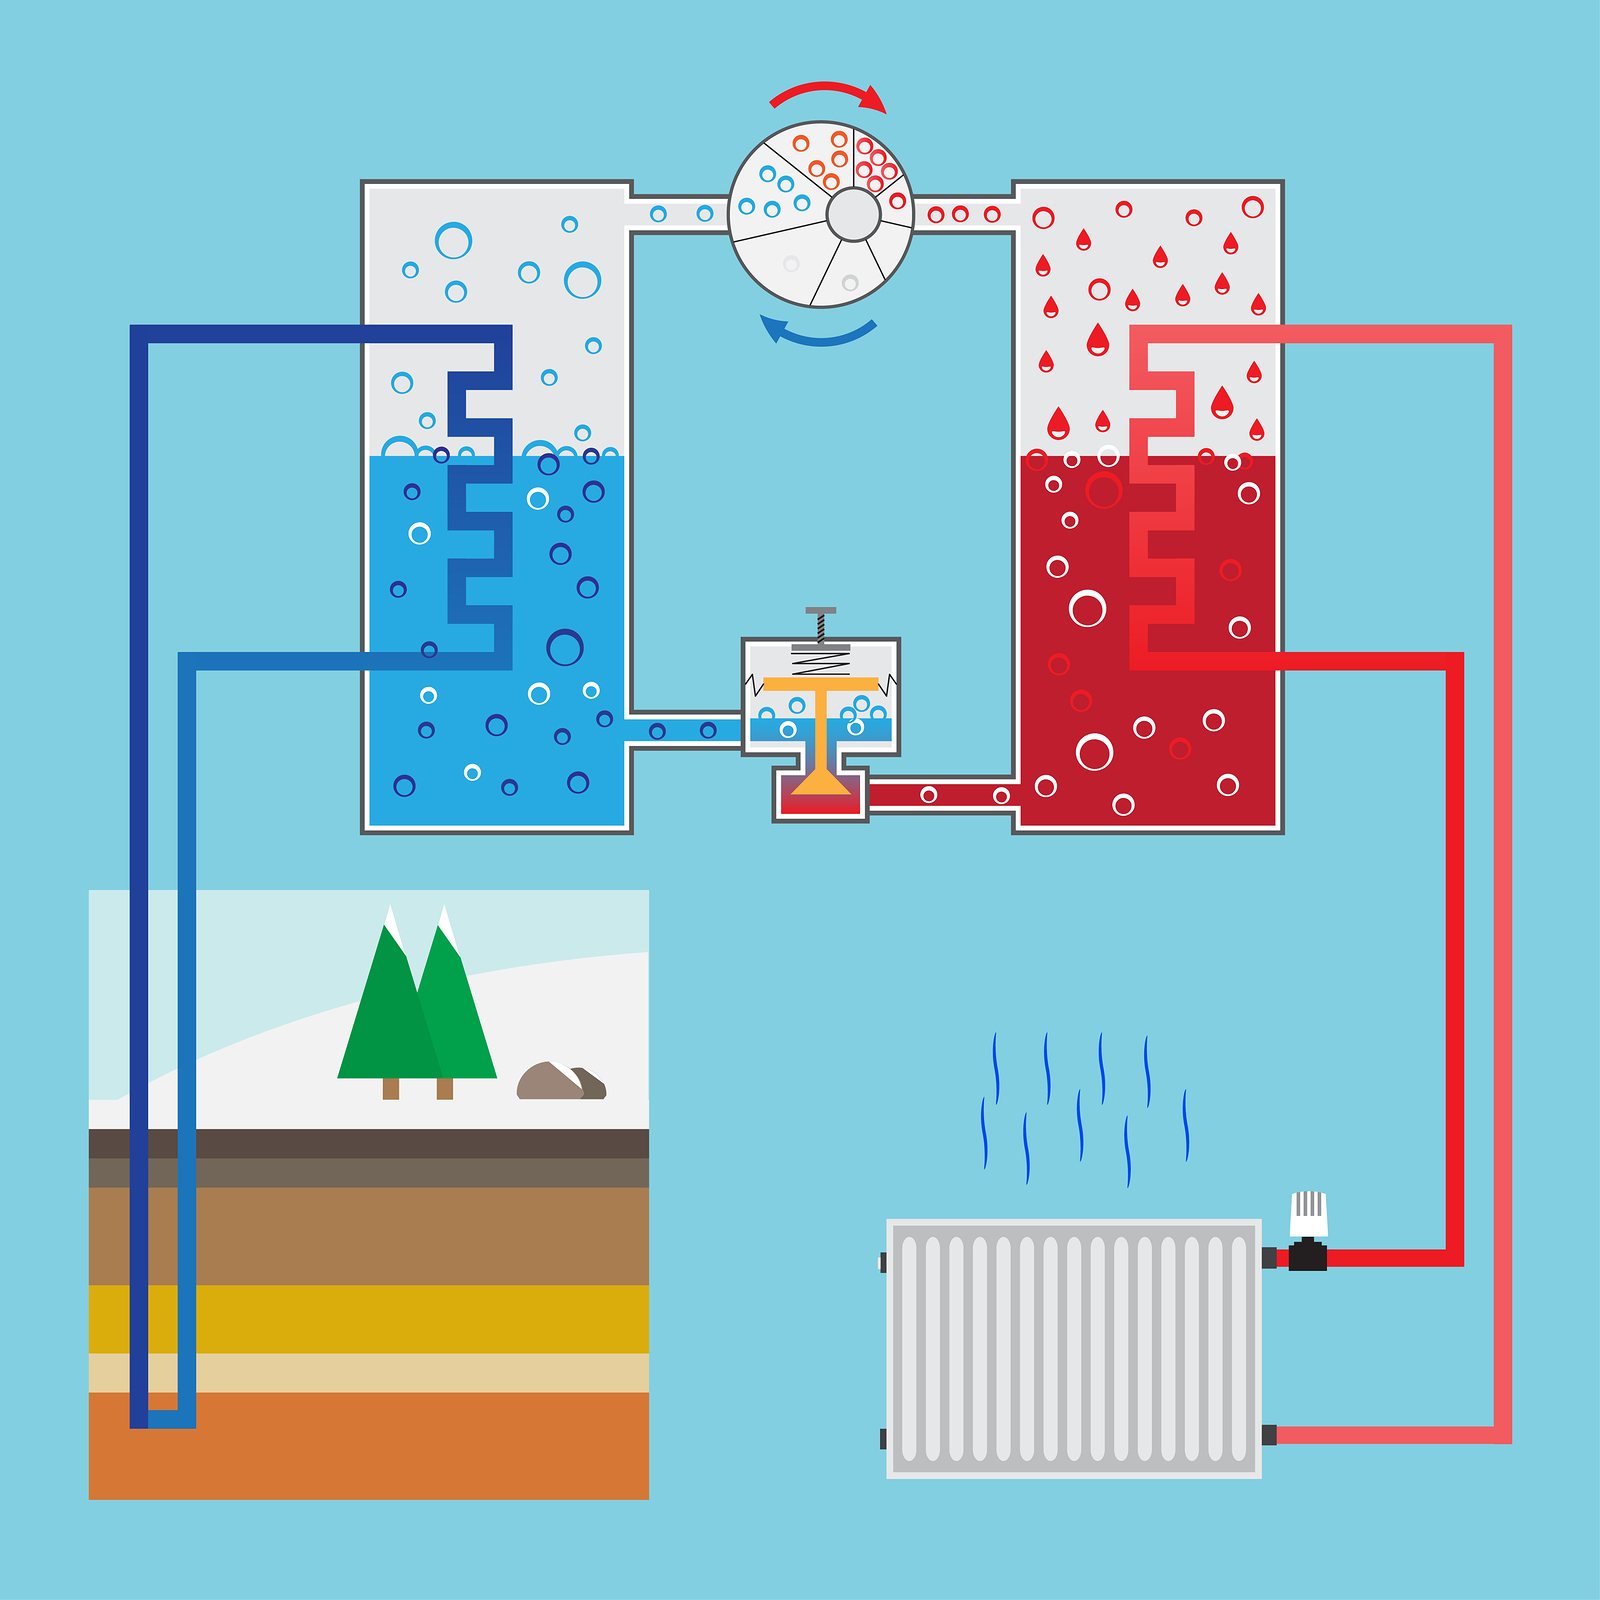 Should I Buy A Geothermal Heating & Cooling System For My Home?